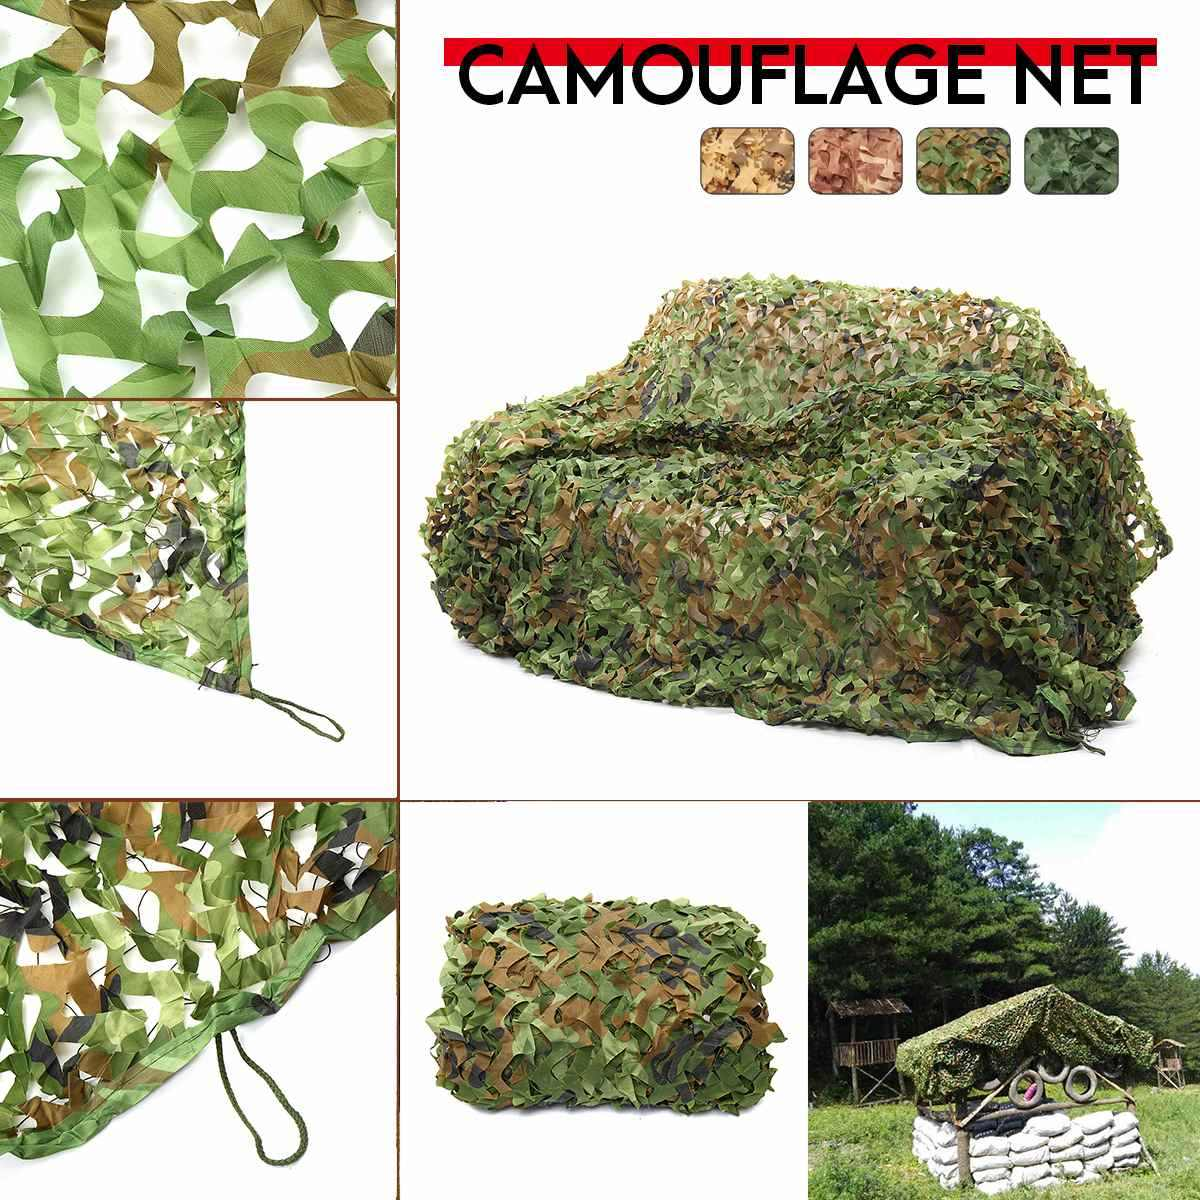 1.5x6 2x2 2x5 2x6 2x7 2x8 2.5x5 3x6 Jungle Camo Netting Camouflage Net for Car Cover Camping Woodland Military Hunting